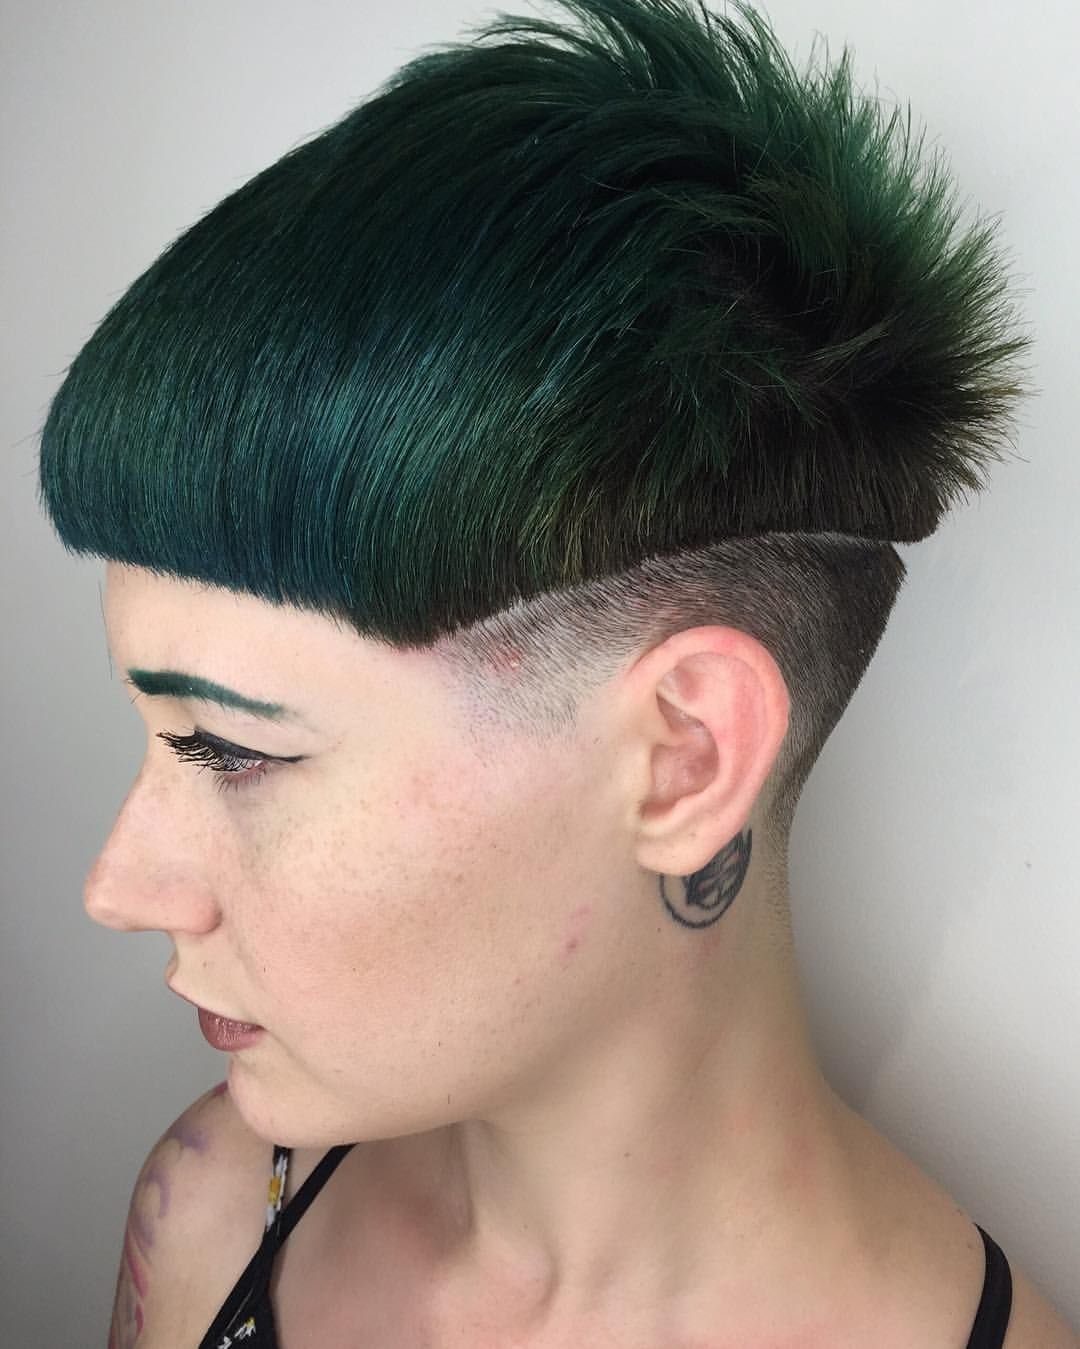 Big thanks to my boss man for my amazing new cut